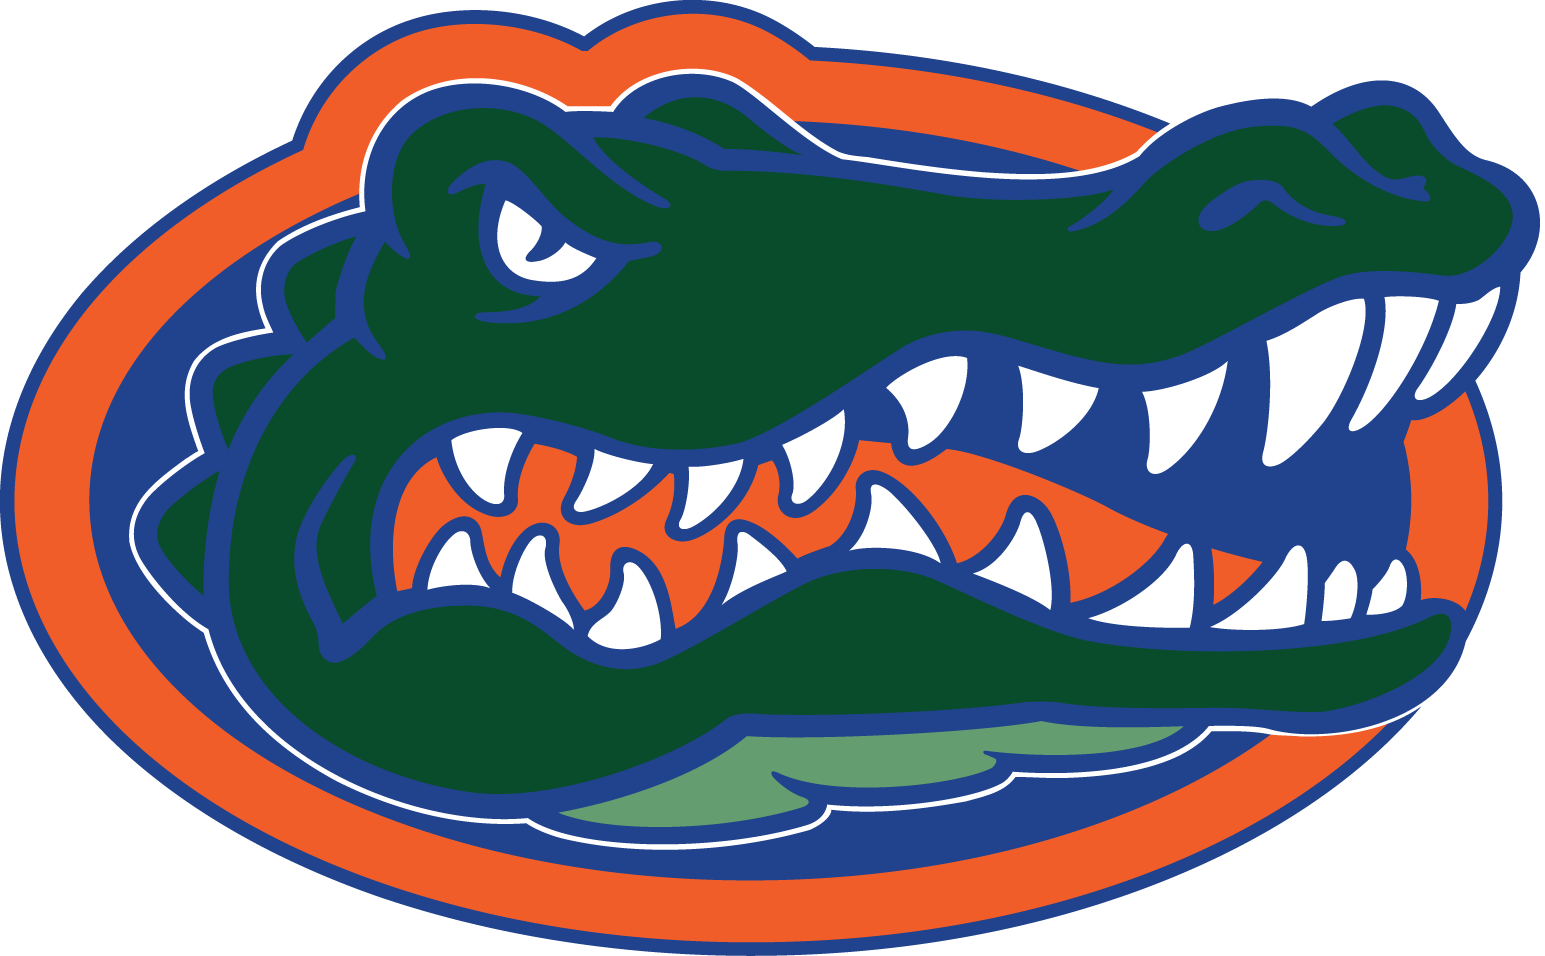 Uf college of jhournalism and communications clipart graphic royalty free download University of Florida | Fox Sports University graphic royalty free download